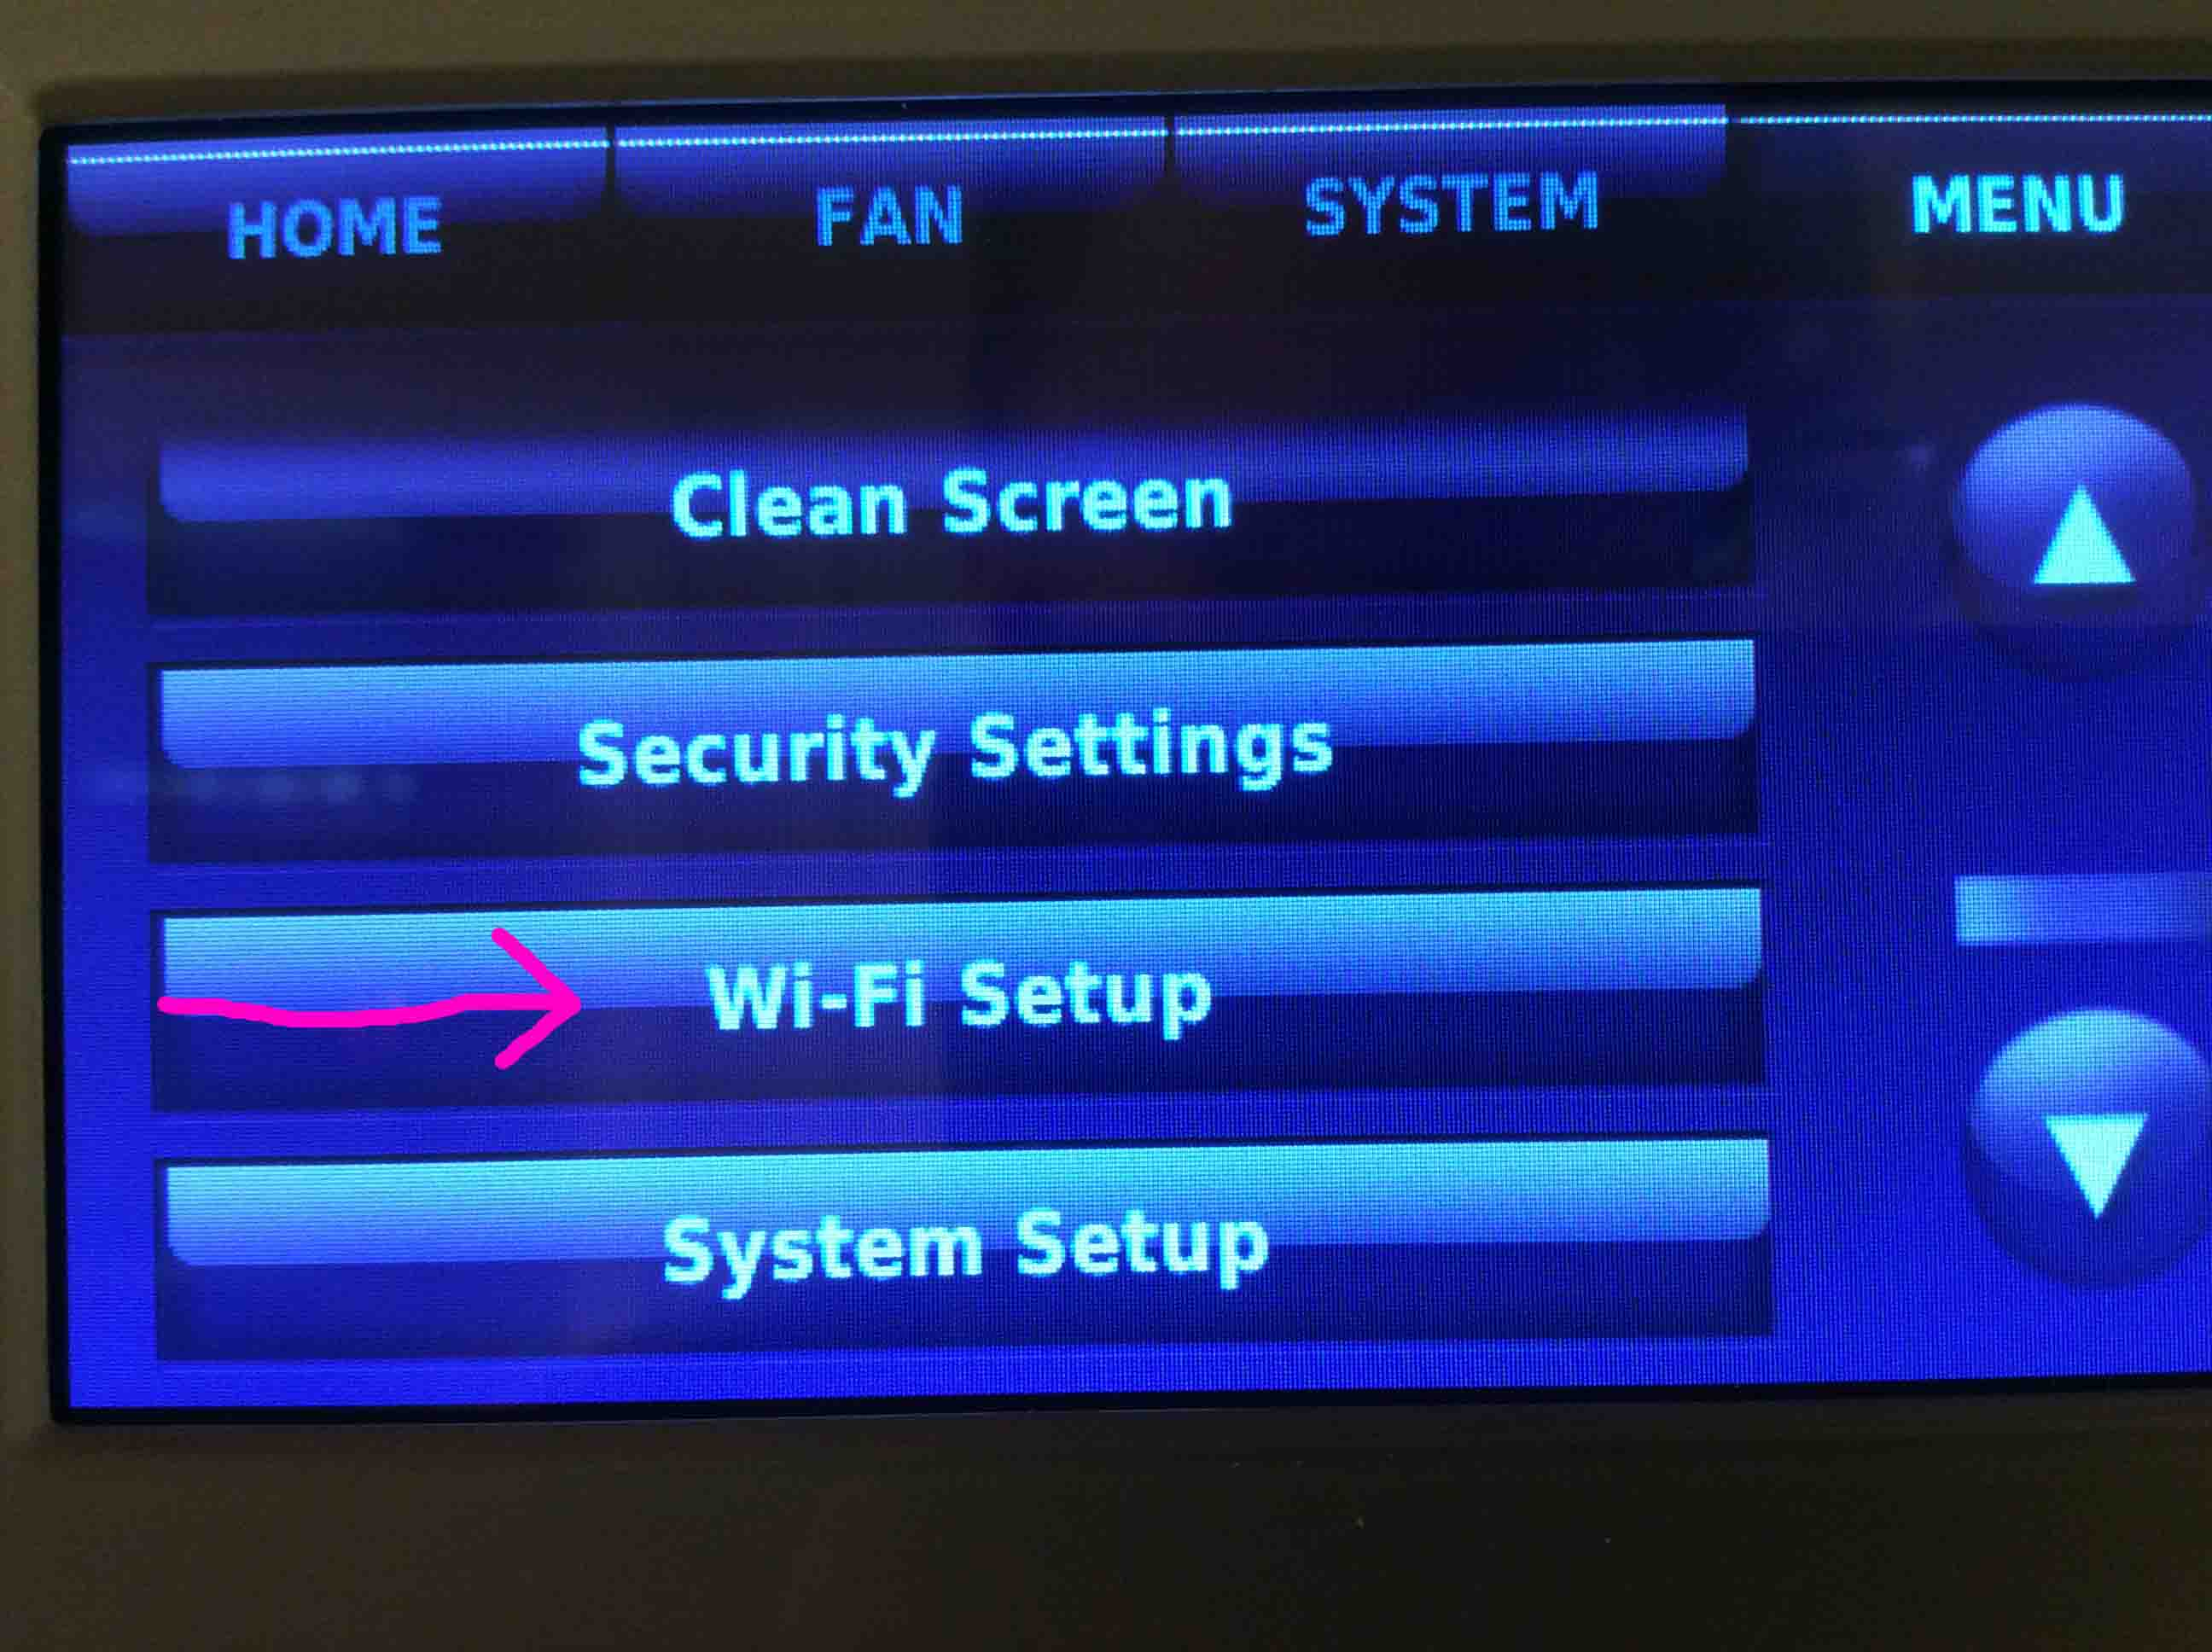 Troubleshooting Honeywell Thermostat Wifi Problems Rth9580wf Toms I Need A Color Coded Wiring Diagram For My Chronotherm Iv Plus Picture Of Wi Fi Touchscreen With The Setup